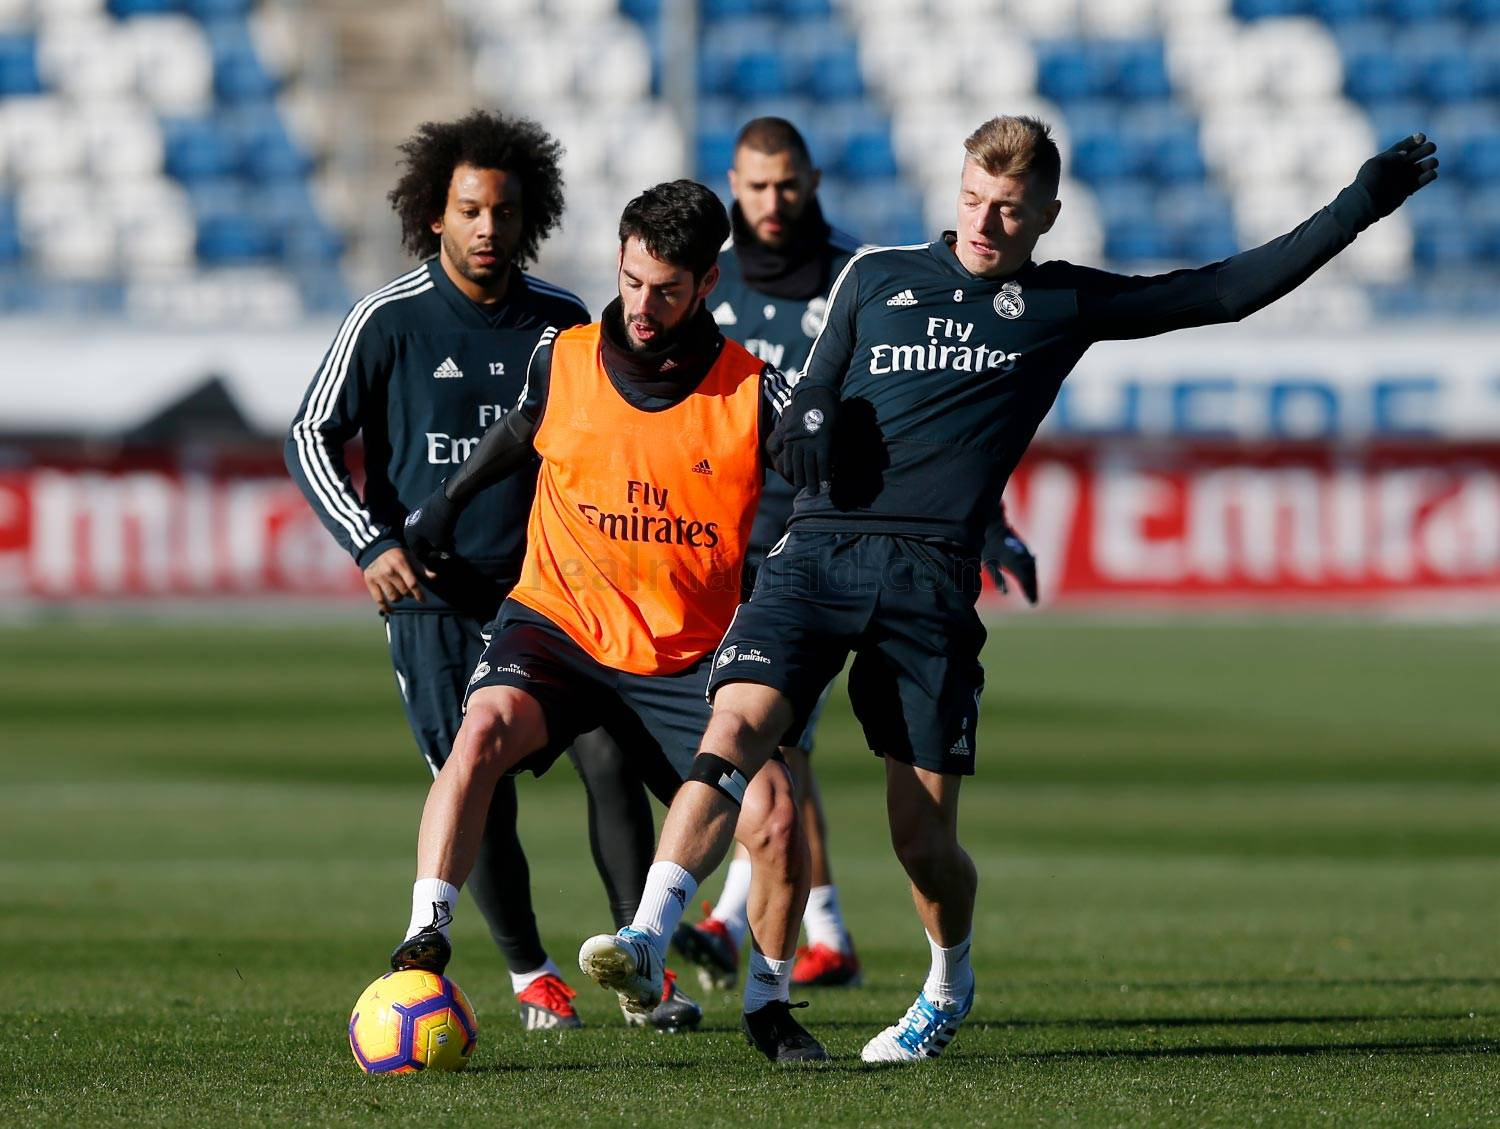 Real Madrid - Entrenamiento del Real Madrid - 14-12-2018